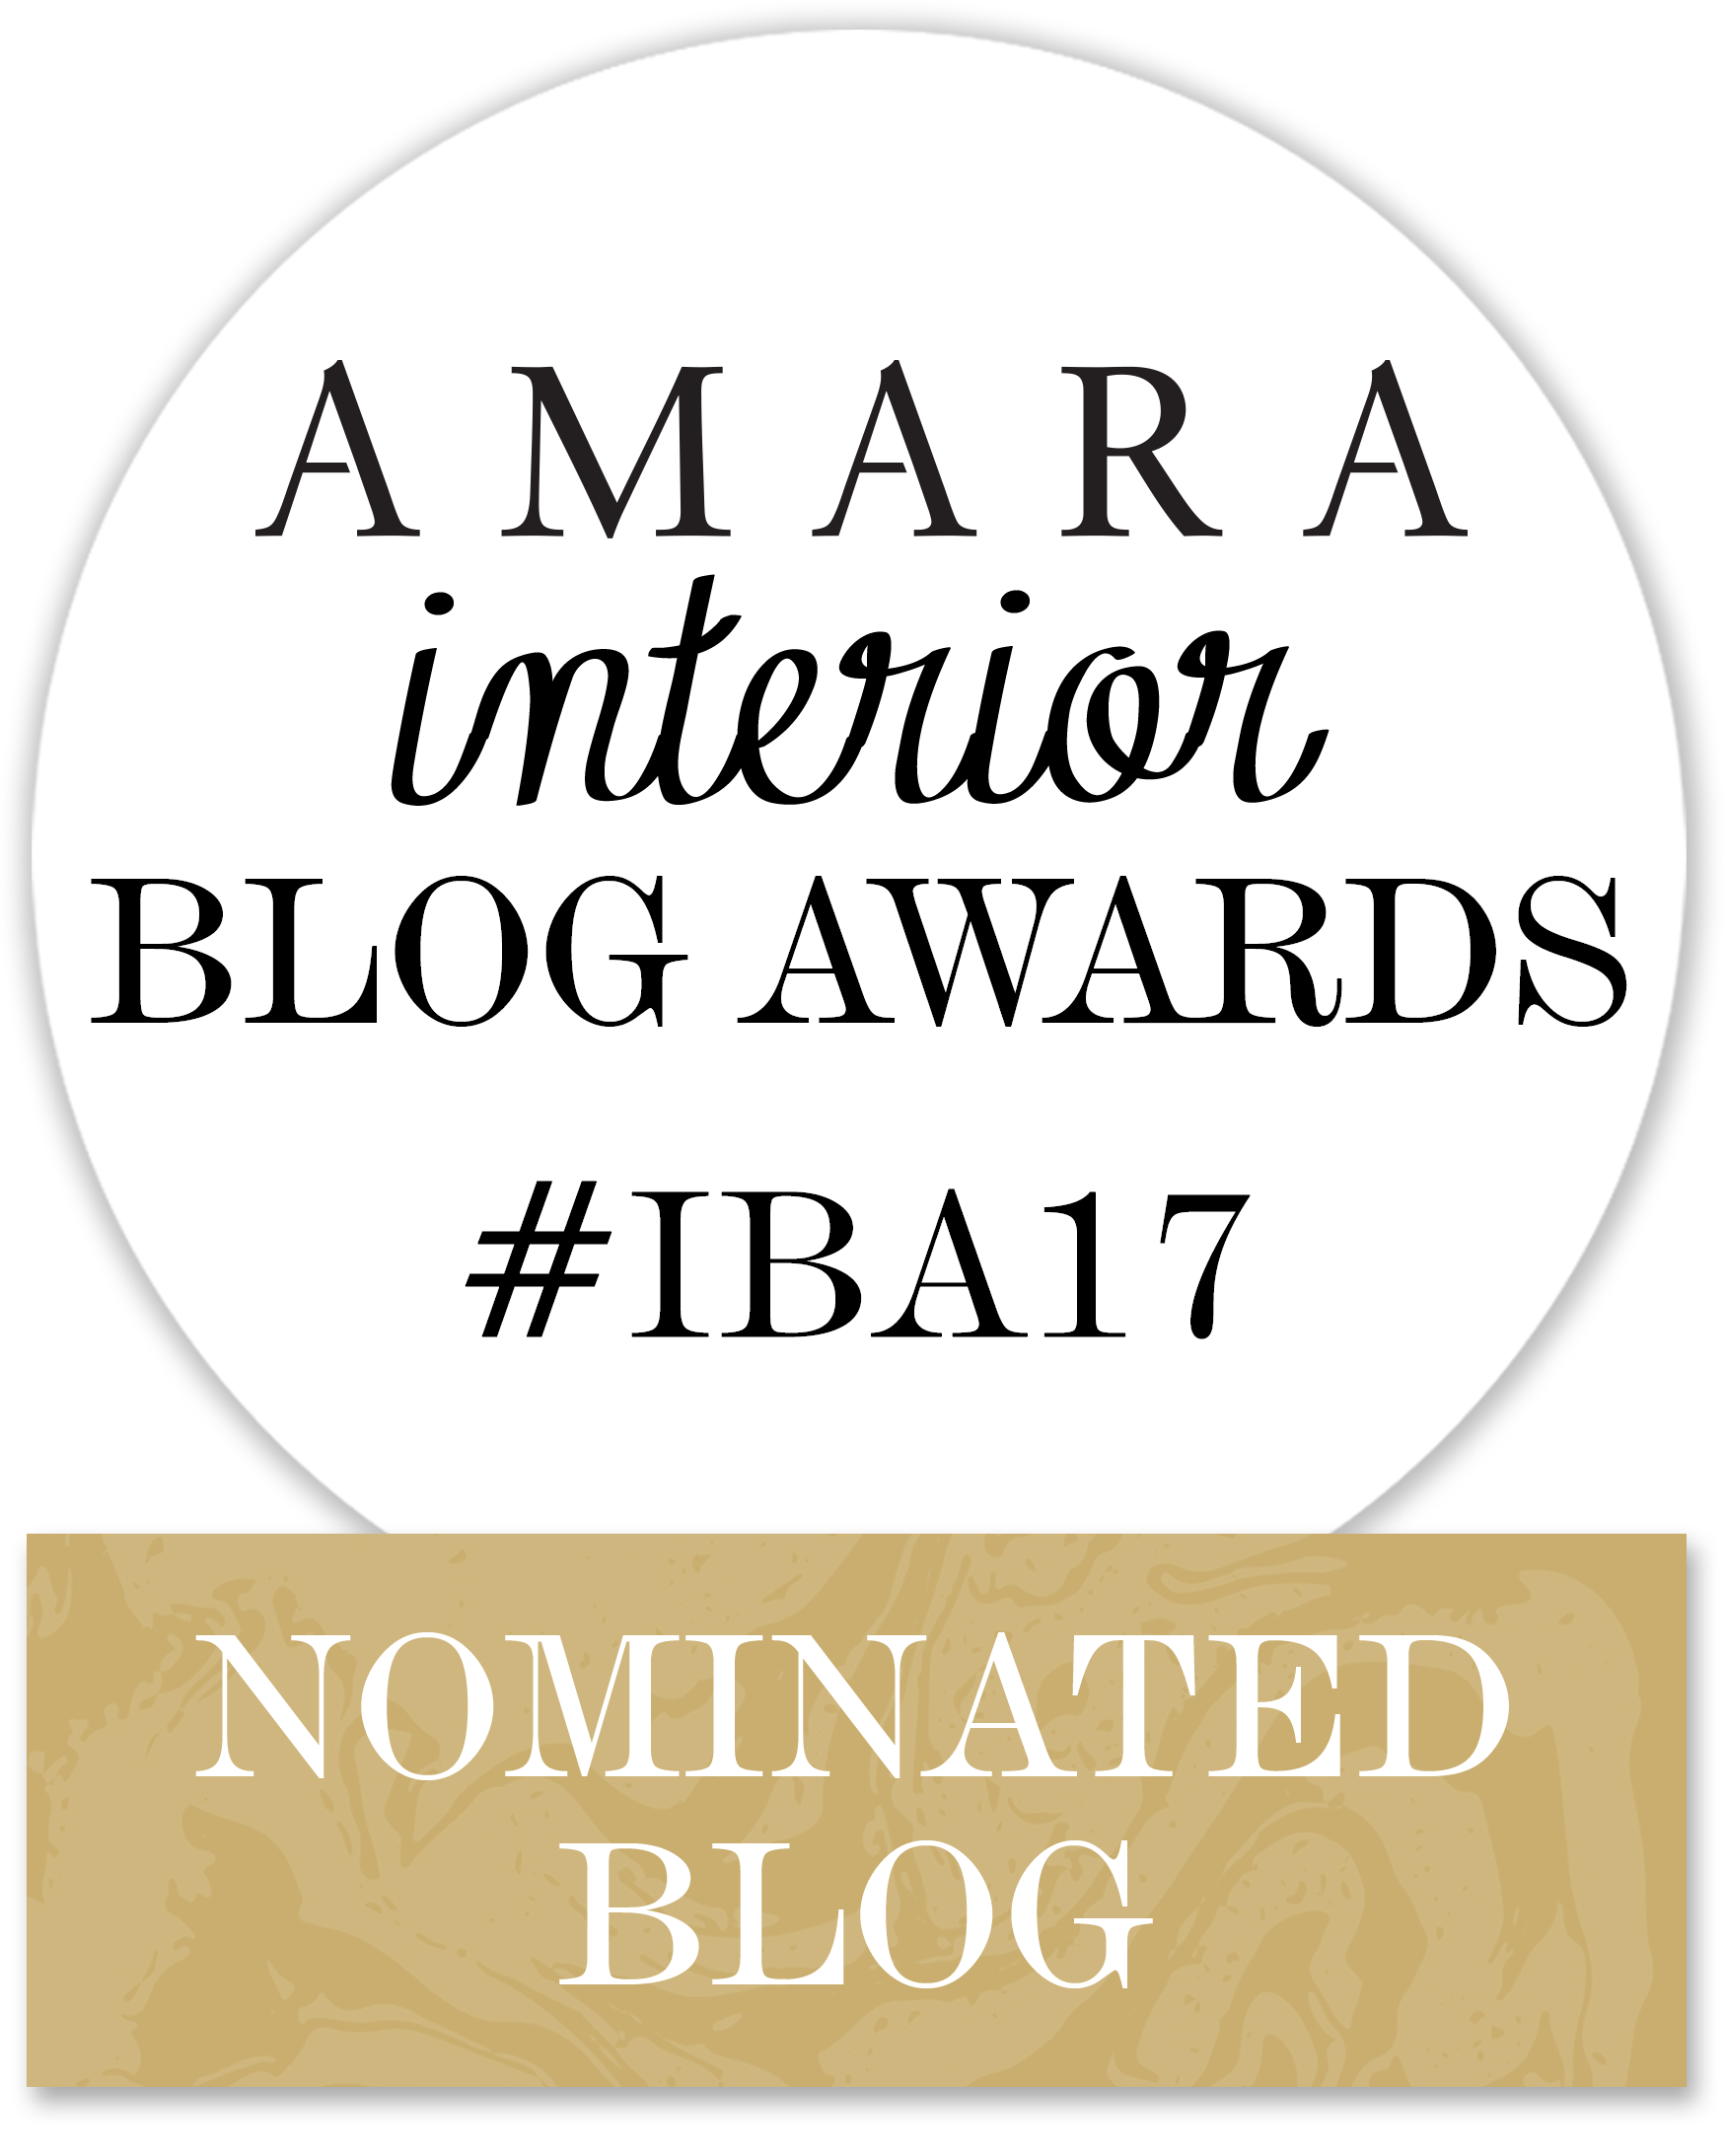 Nominated Blog Amara Interior awards